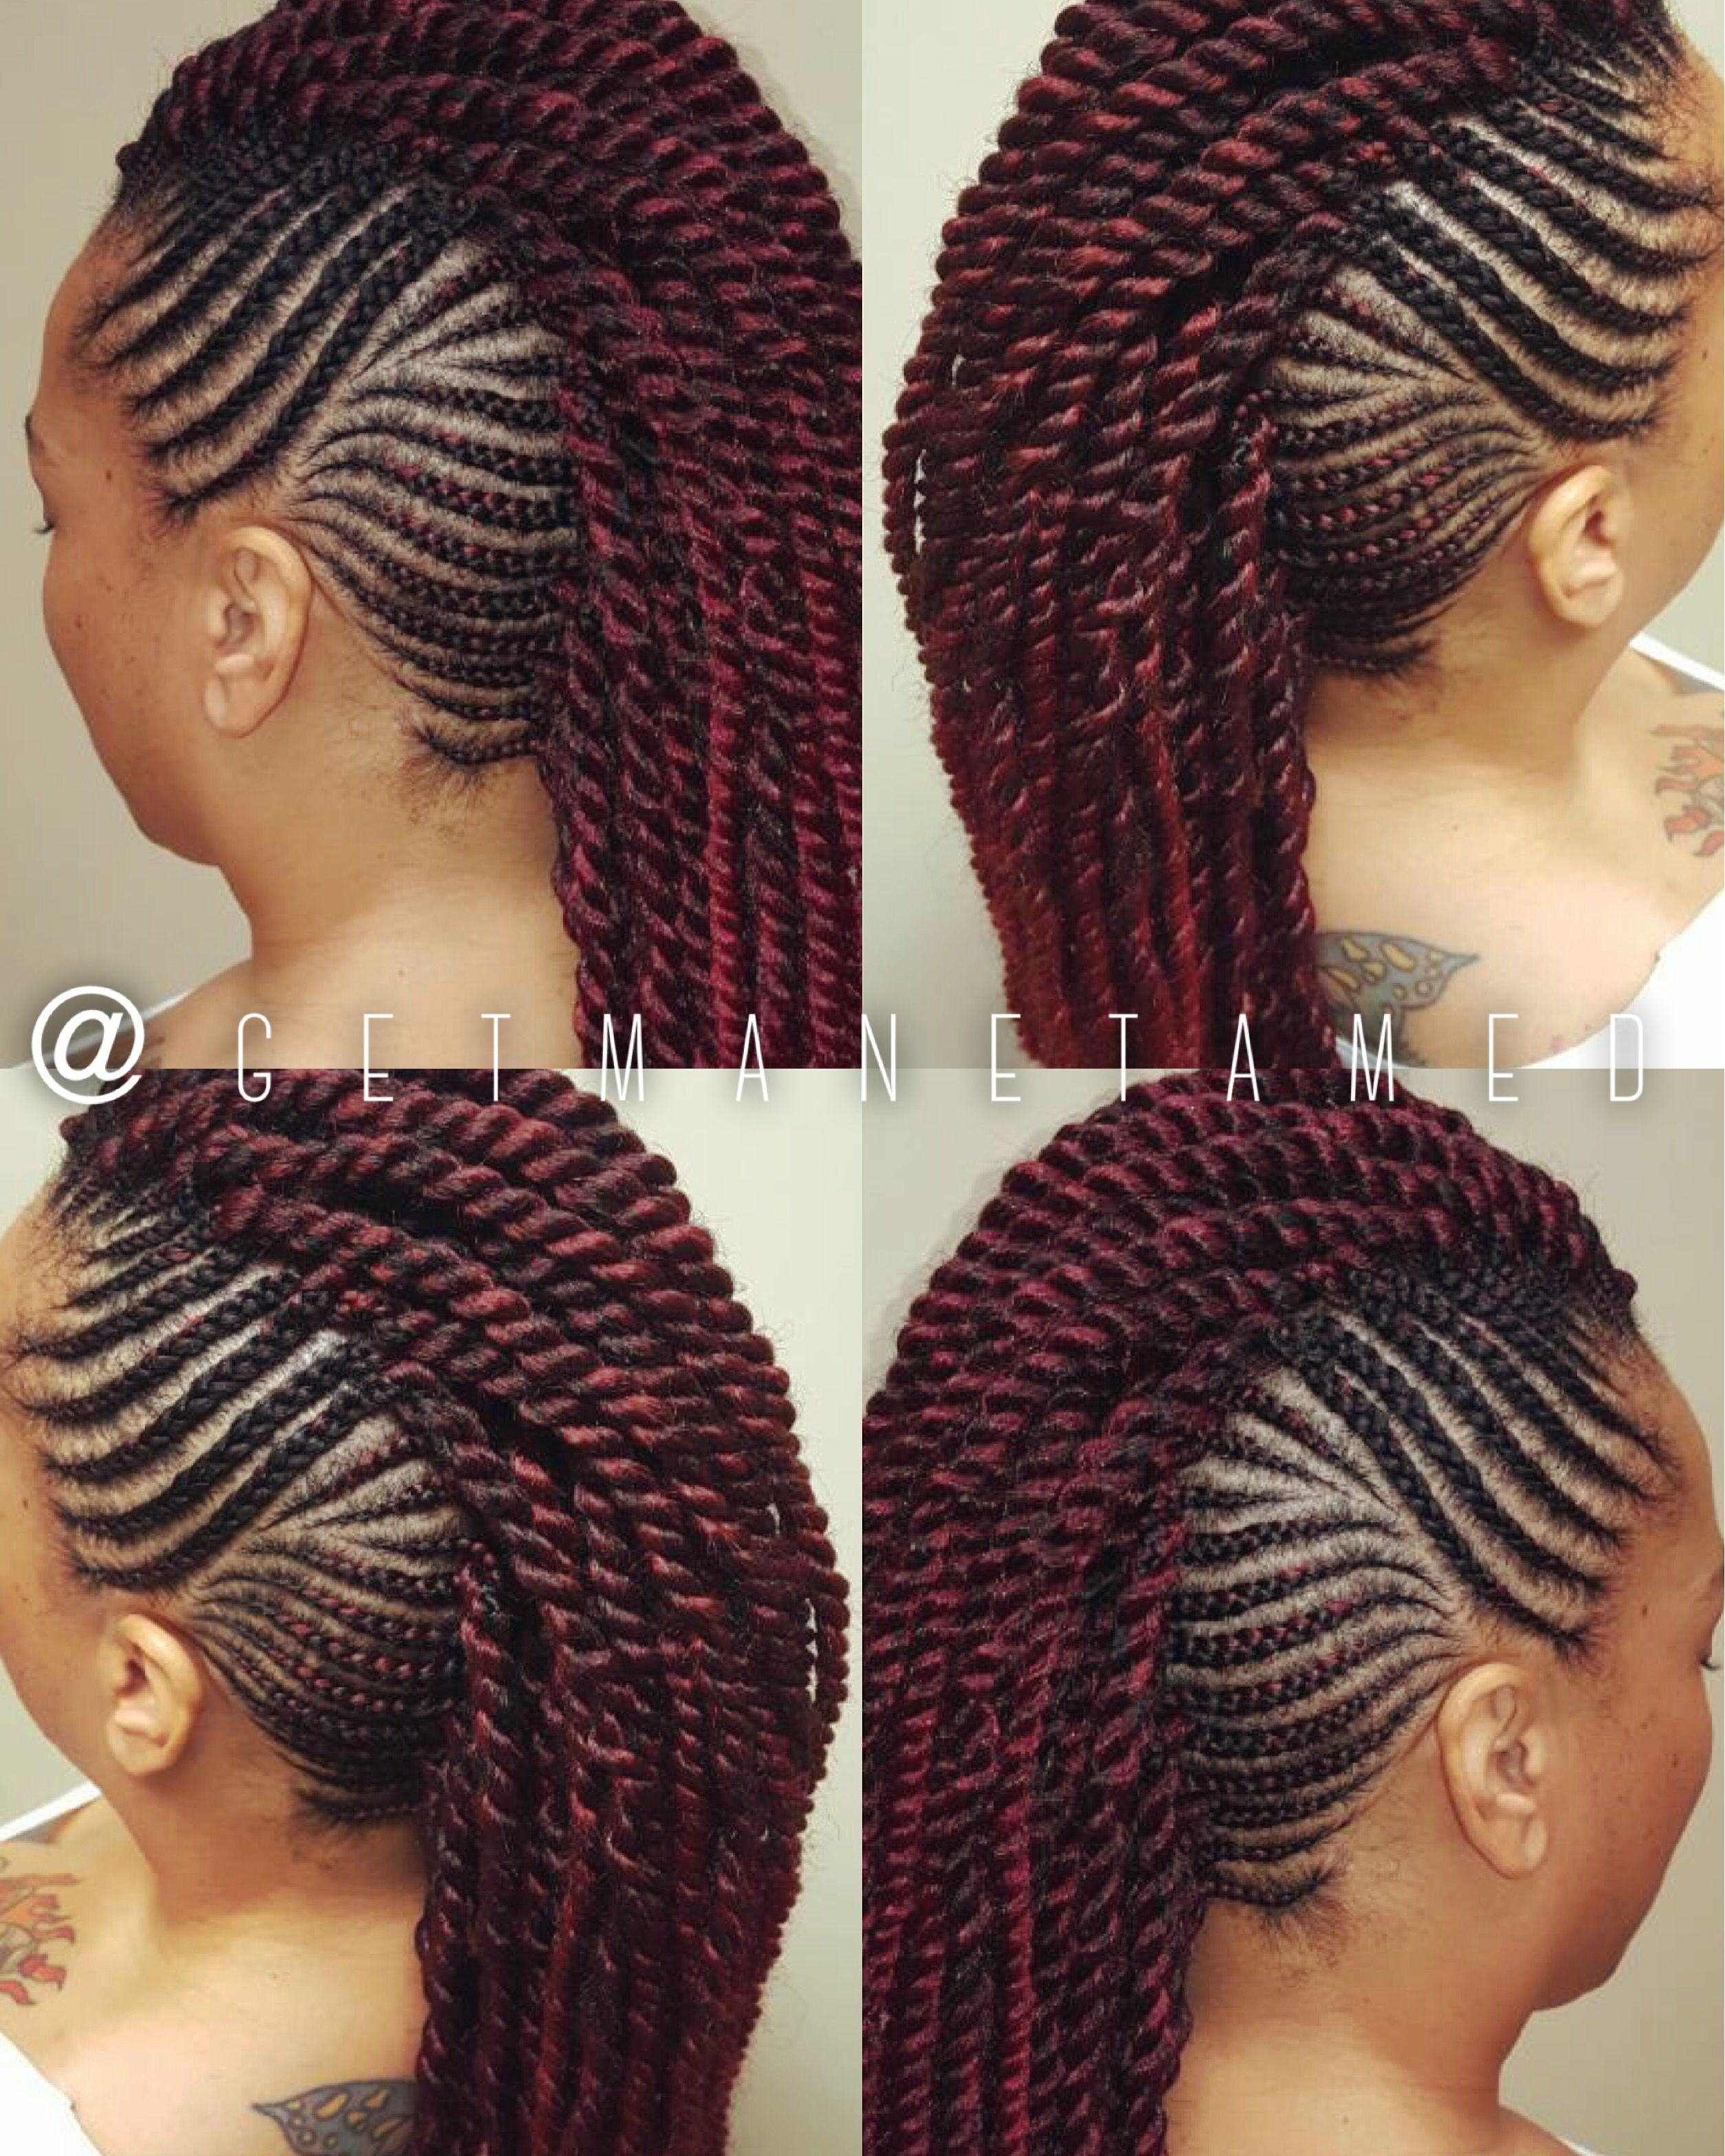 Pin By Manetamed Studio On Braided Mohawks Braided Mohawk Hairstyles Mohawk Braid Styles Mohawk Hairstyles